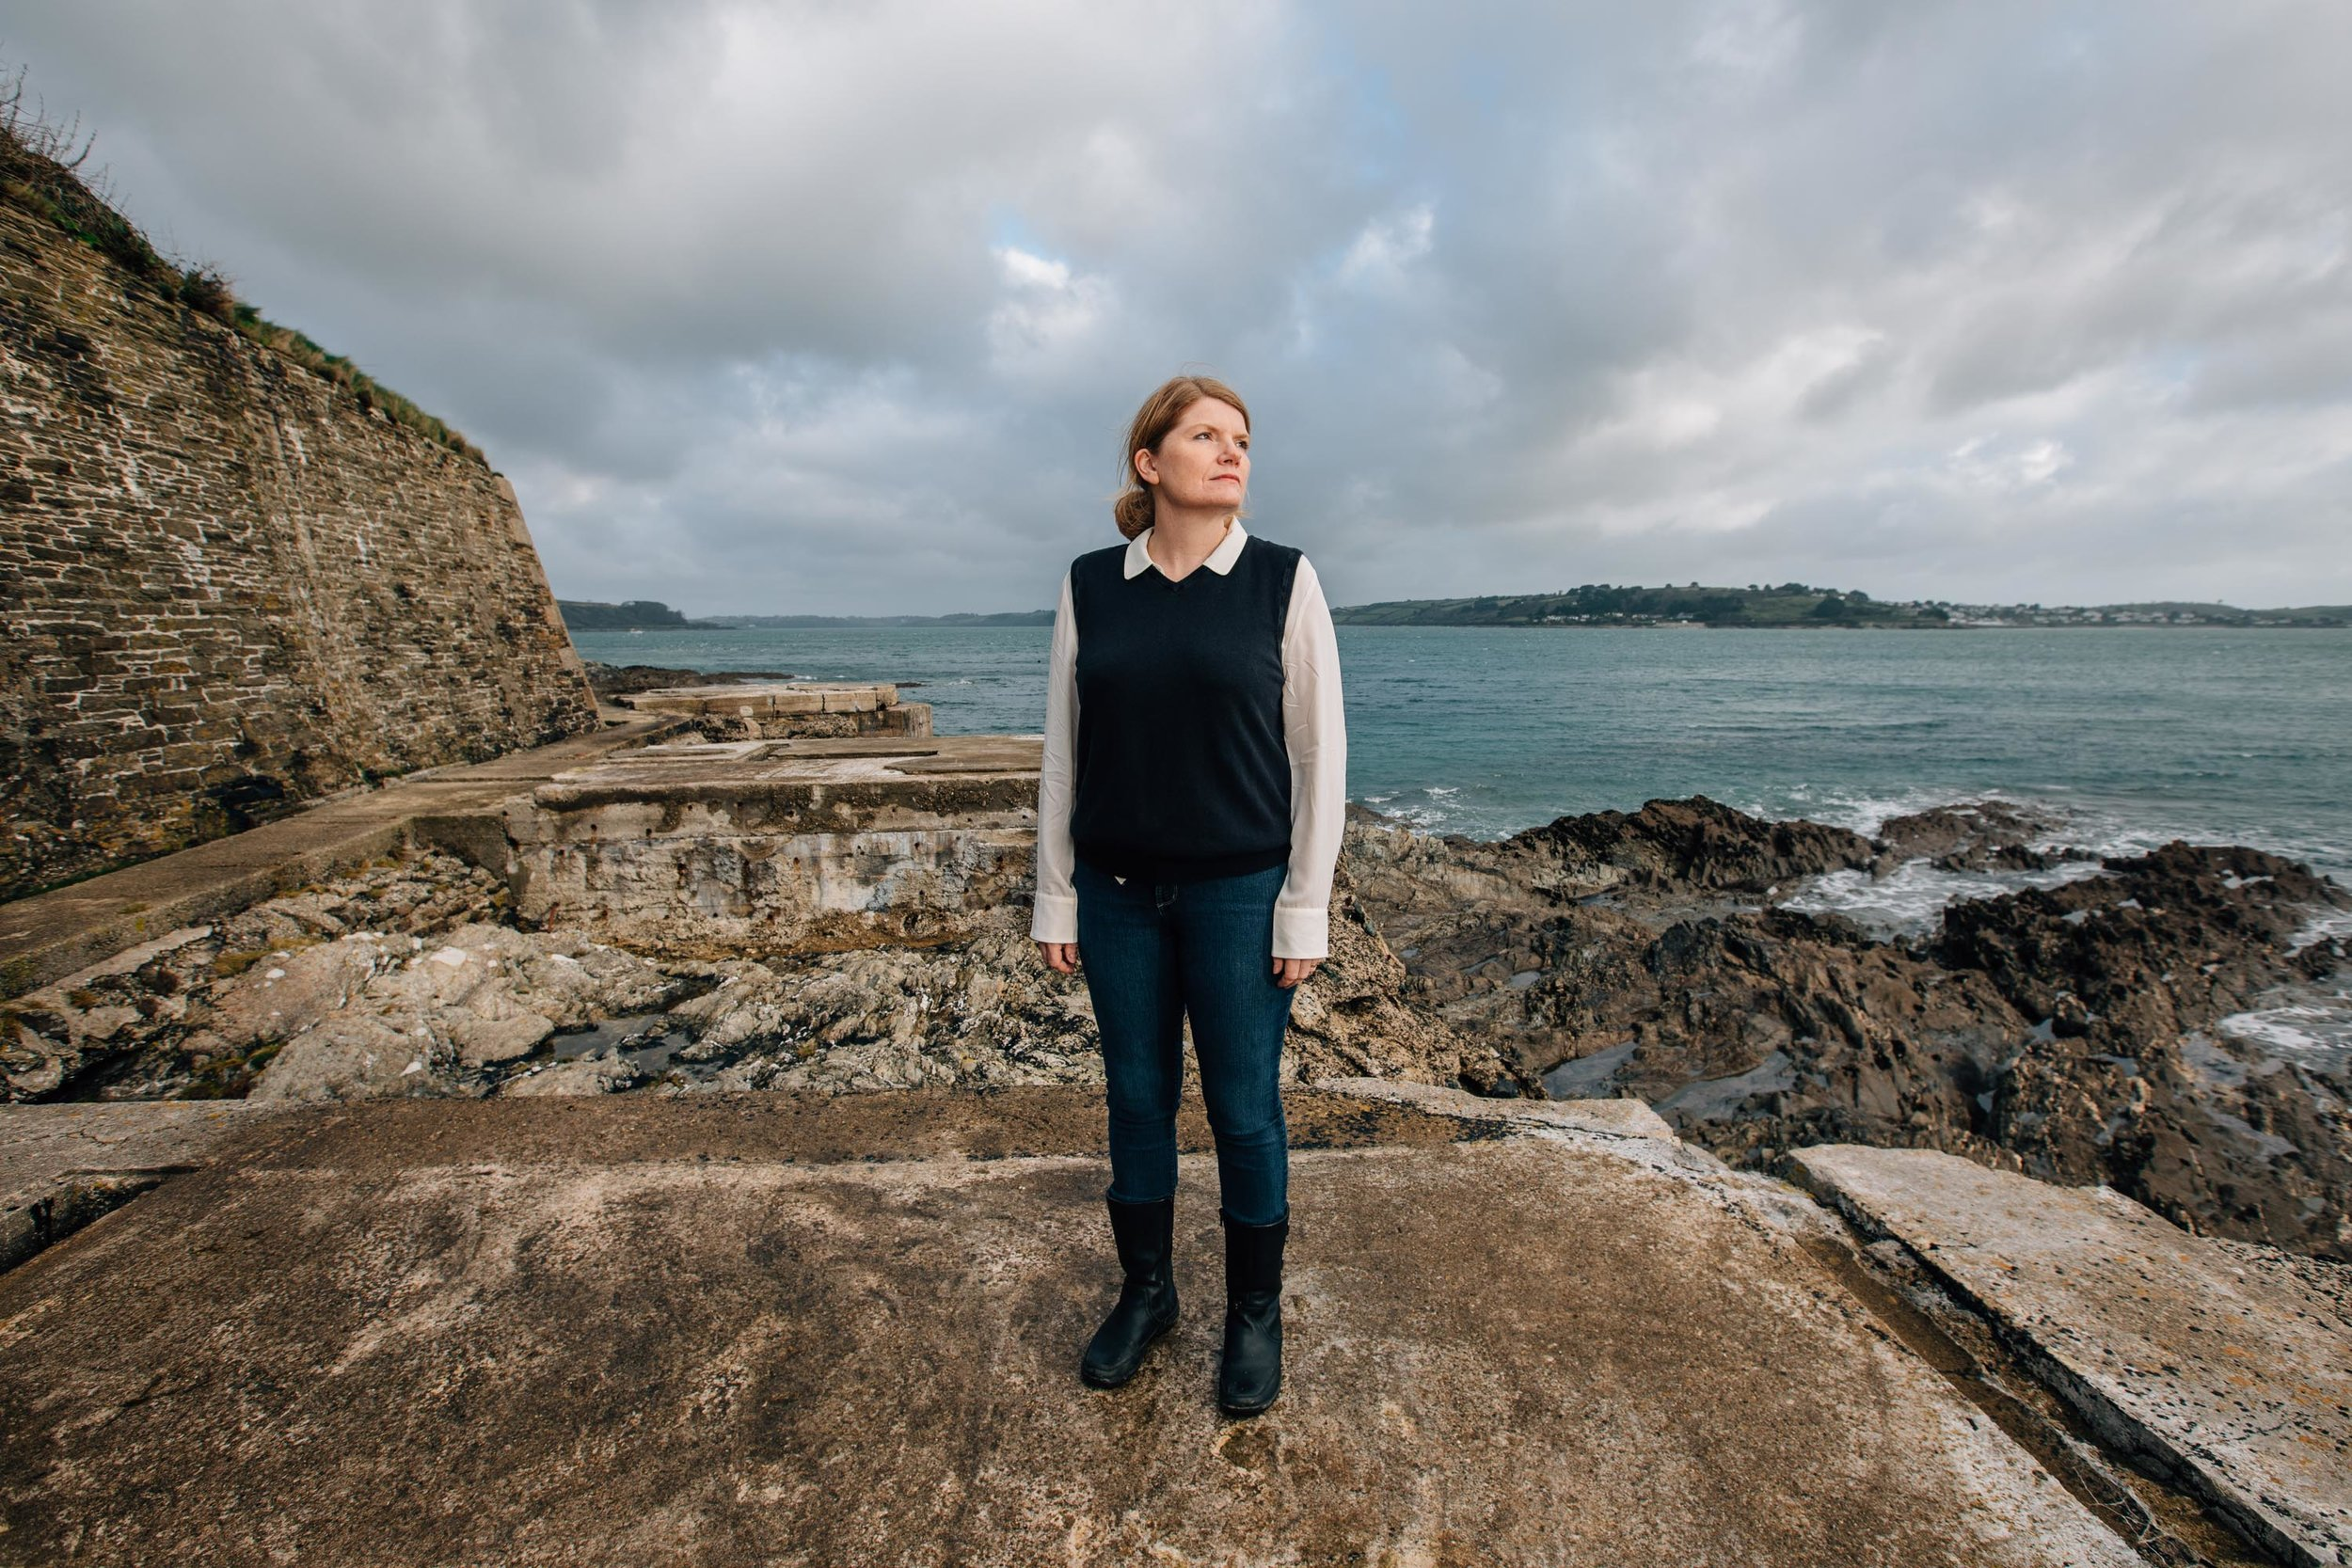 Portrait of Cathy Rentzenbrink, whose brother spent eight years in a vegetative state before the courts permitted him to have all food and water withdrawn, pictured in Falmouth, Cornwall, where she lives with her family. 9th Dec 2018.